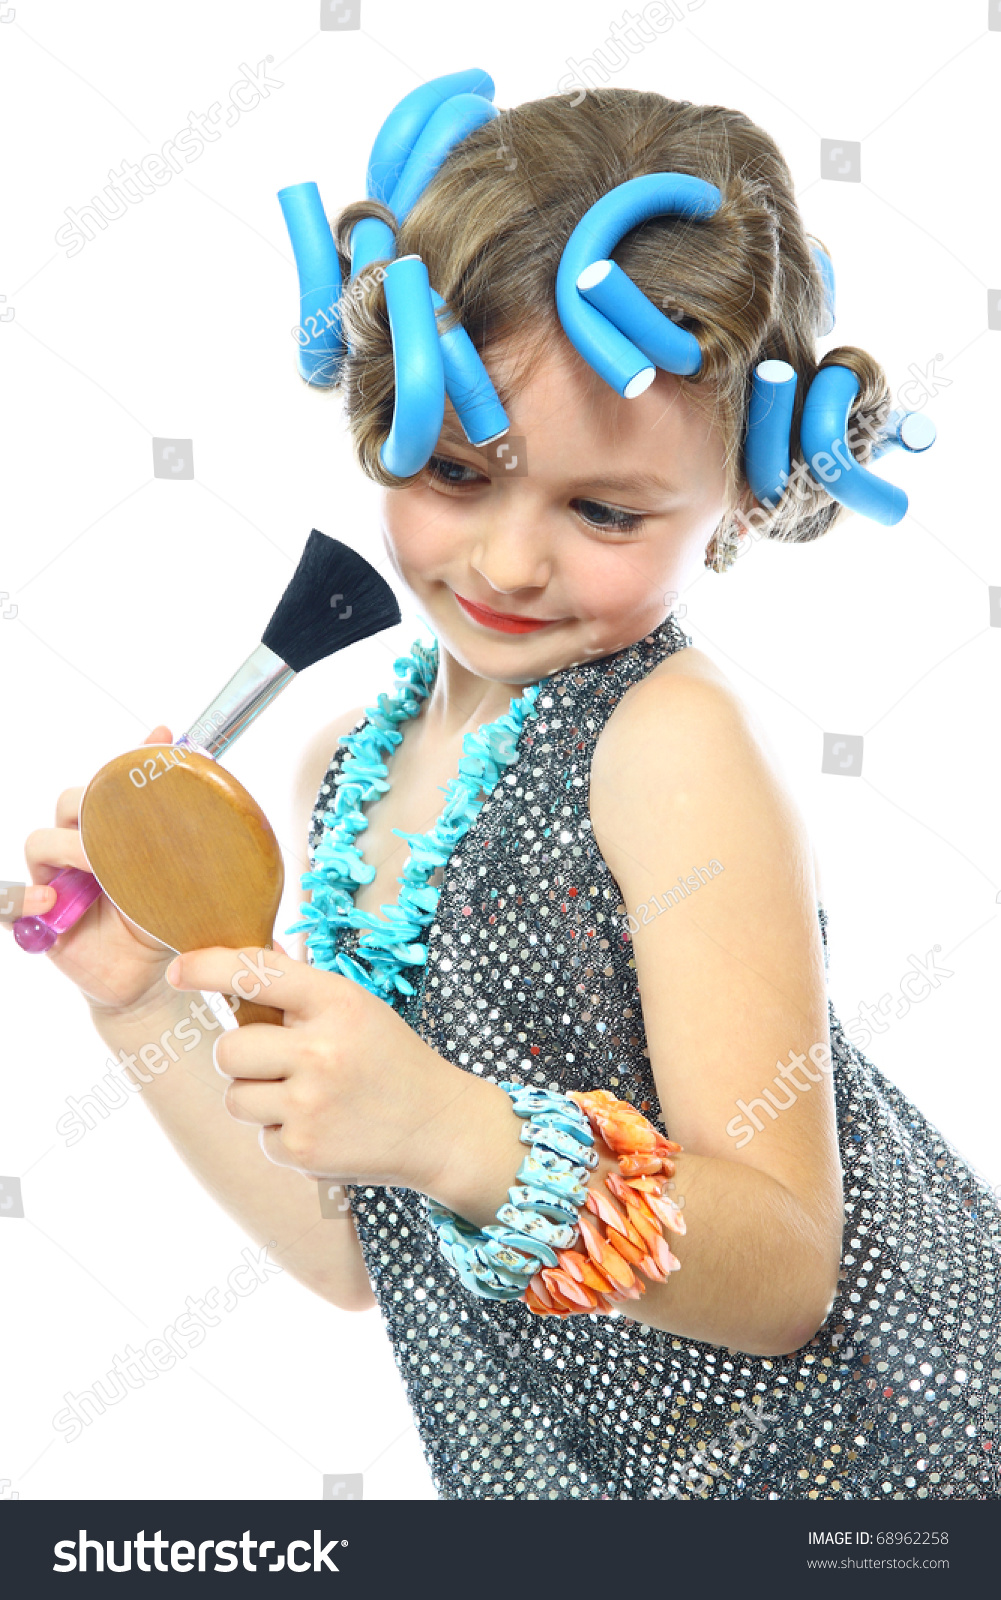 Infant Toddler Mirror Cute Little Girl Brush Makeup Mirror Stock Photo 68962258